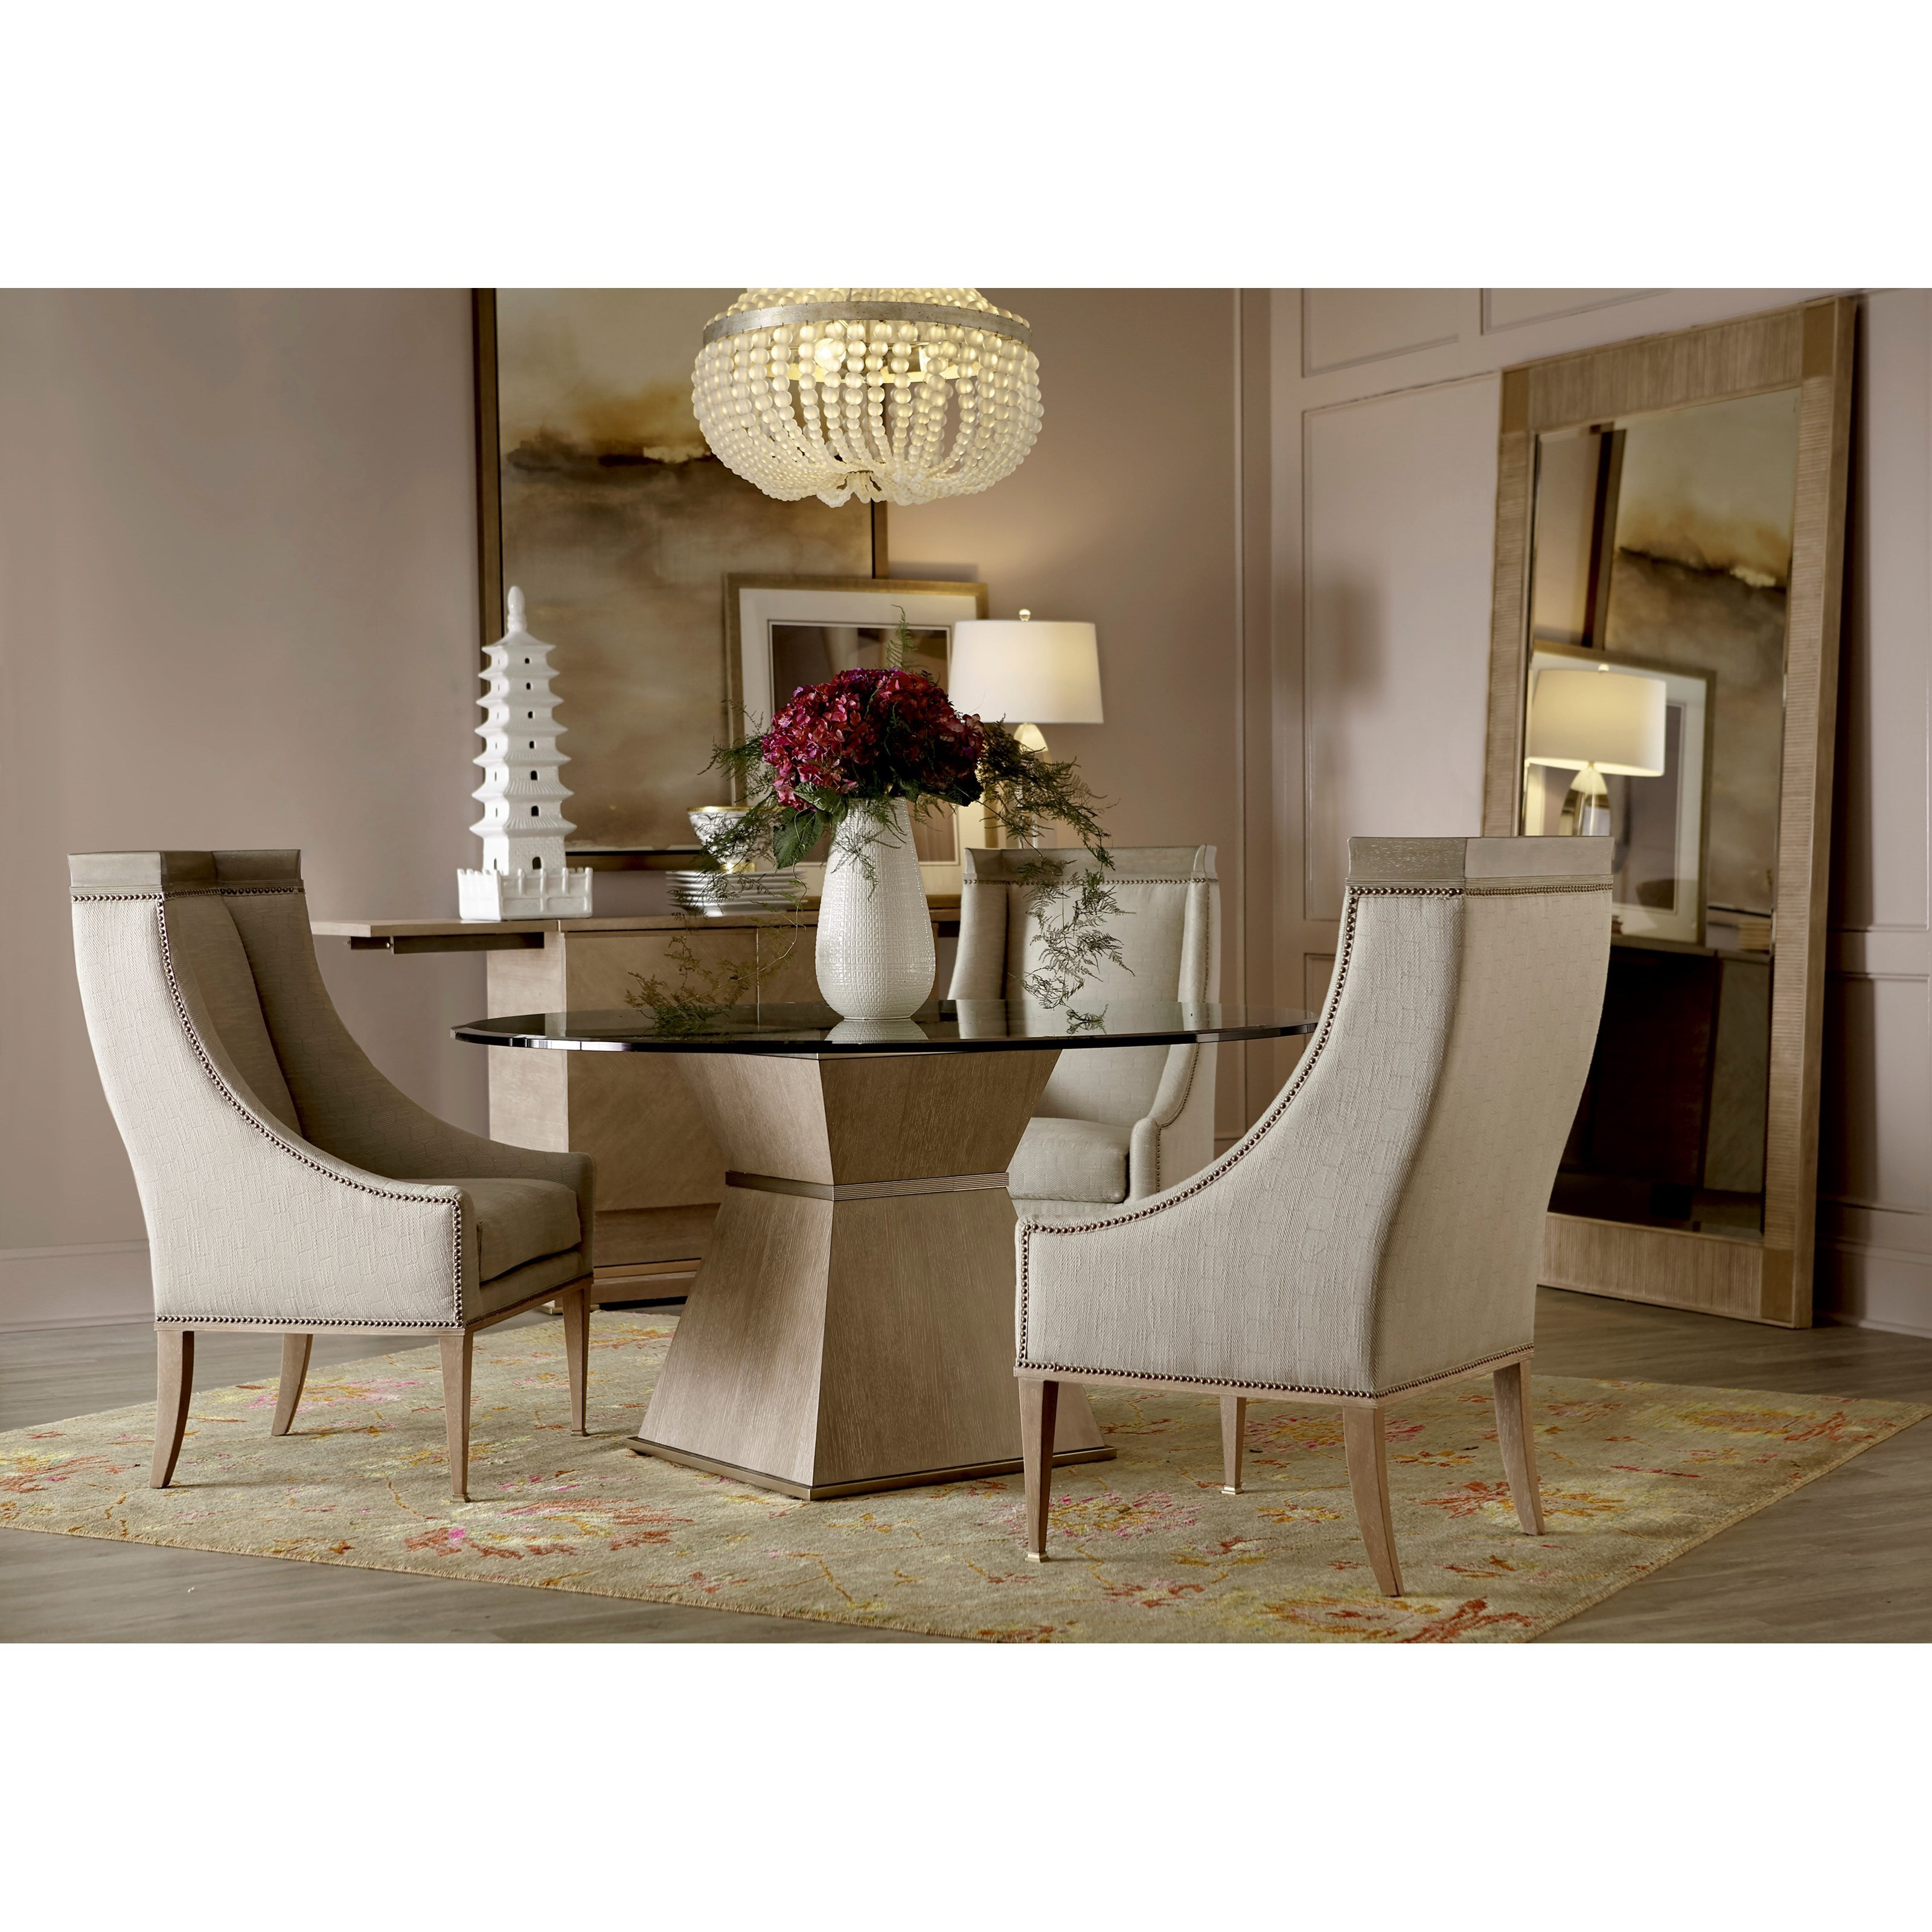 ART Furniture Inc Cityscapes Formal Dining Room Group